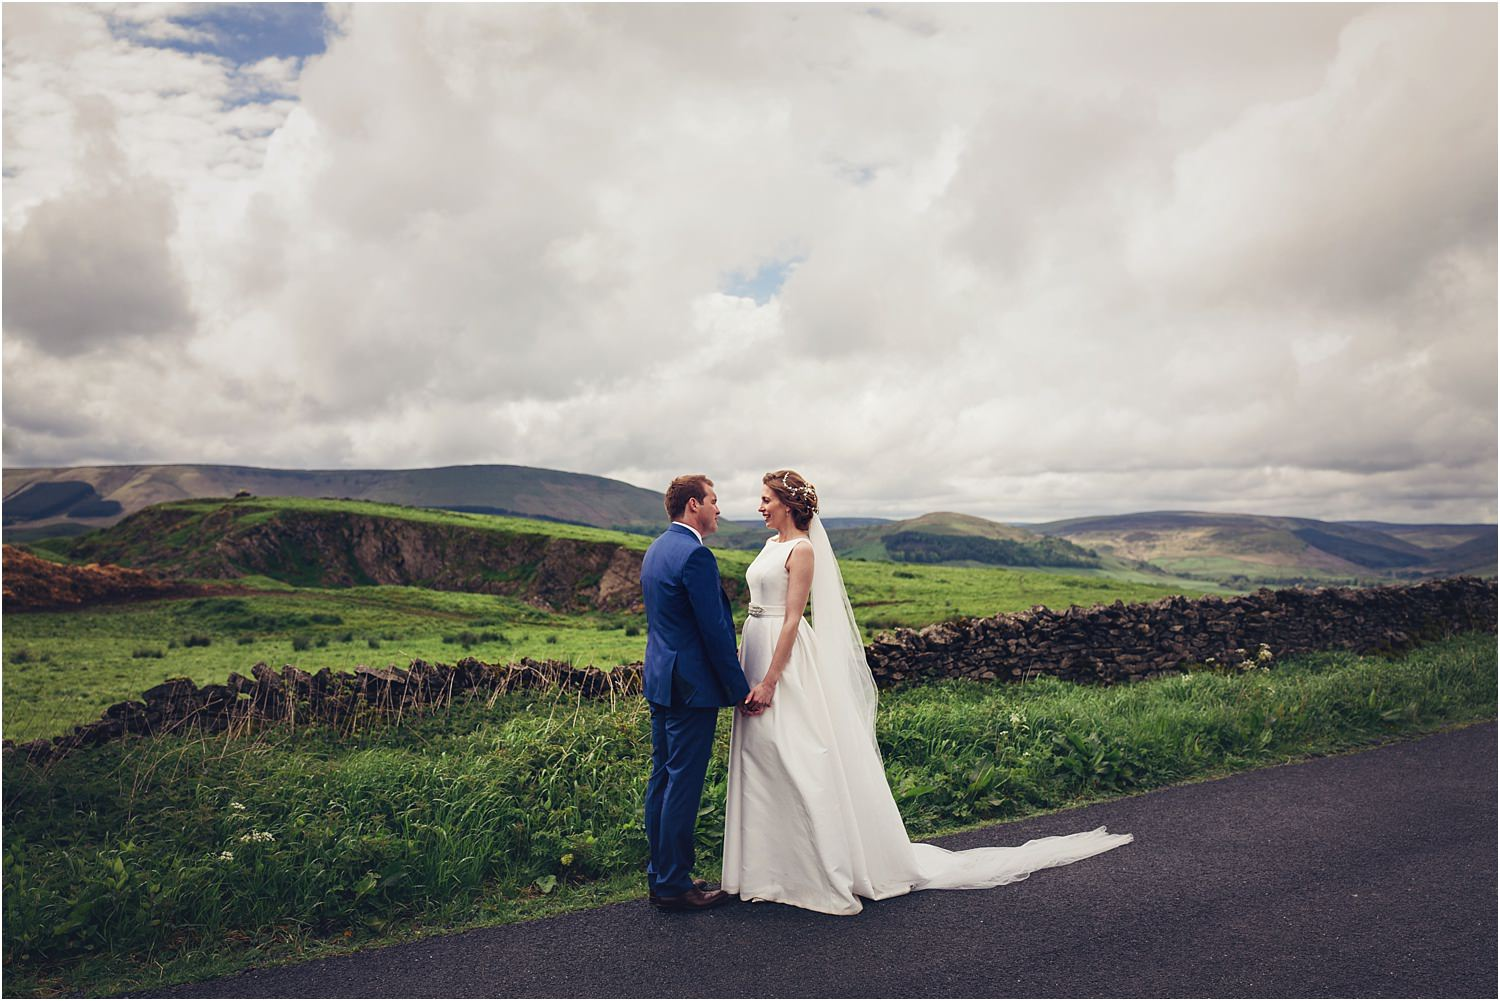 Bride and groom on Lancashire lane with the Trough of Bowland in the background